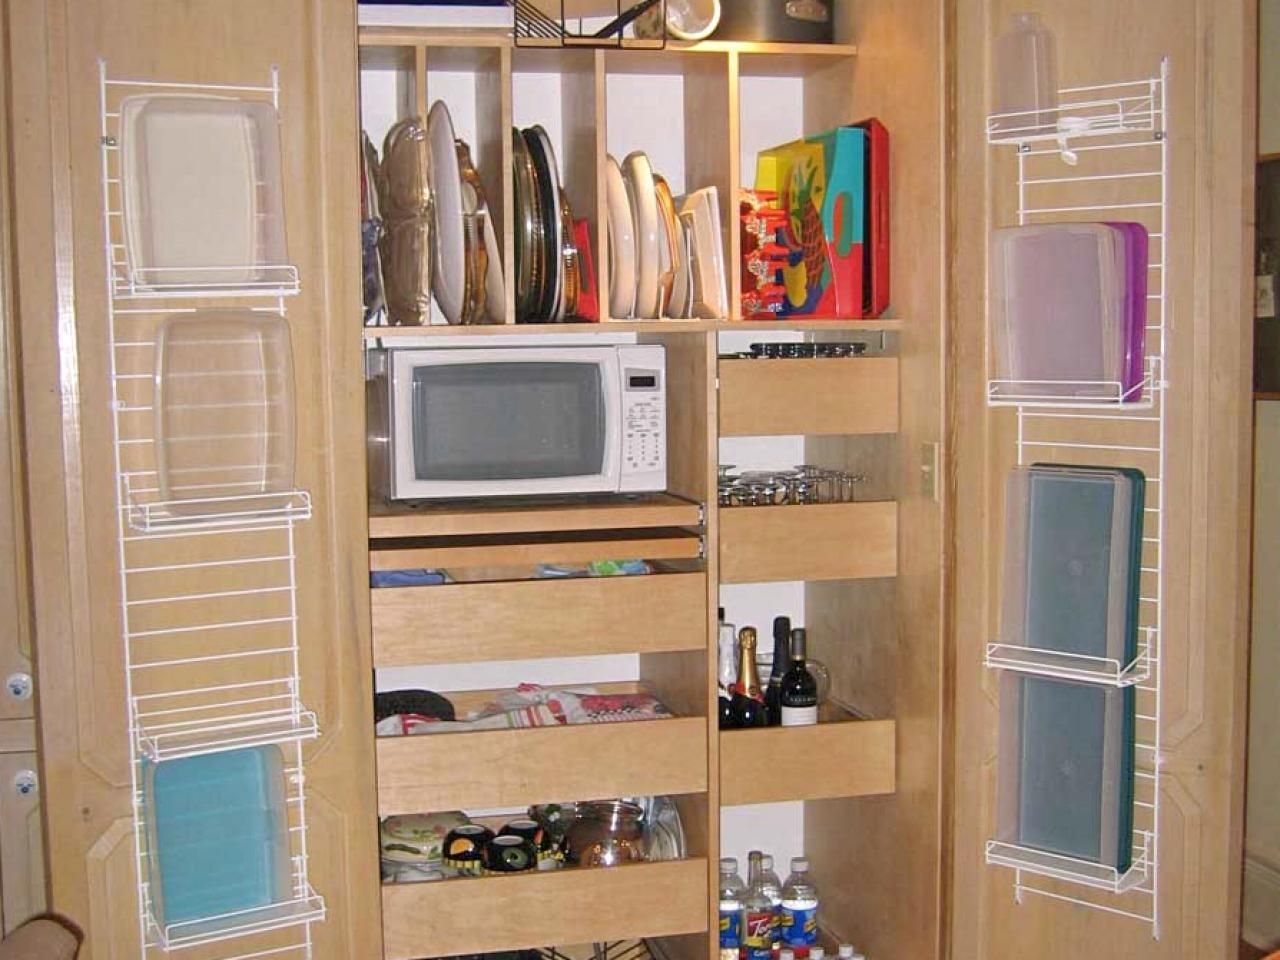 Kitchen Room Pantry Ideas Pantry Storage Cabinets For Kitchen For Storage Racks For Kitchen Cupboards (View 20 of 25)